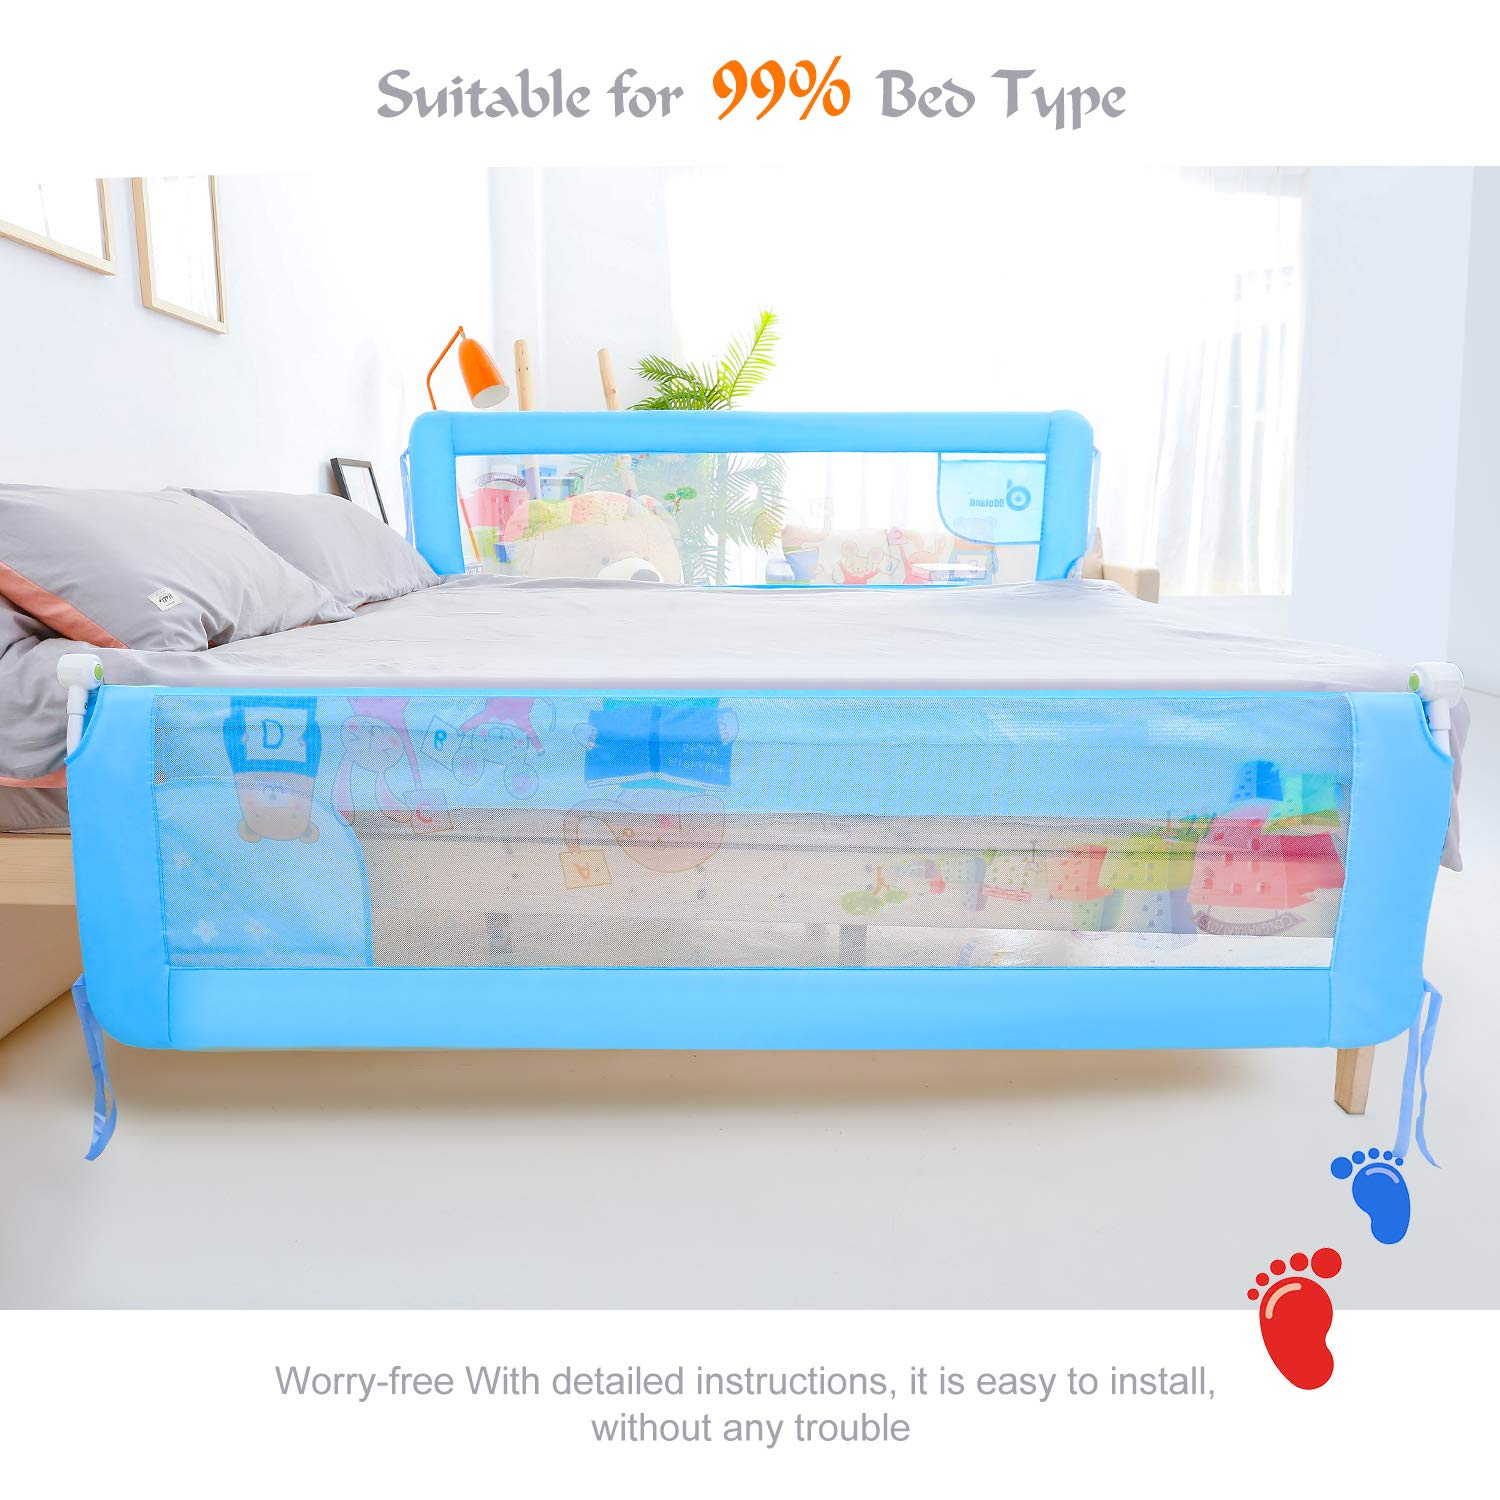 HK 56in Bed Rail Swing Down Safety Bed Rails Hide Away(HA) Bedrail Assist Extra Long BedRails, Mesh Guard Rails for Convertible Crib(1 Pack) by ODOLAND (Image #2)